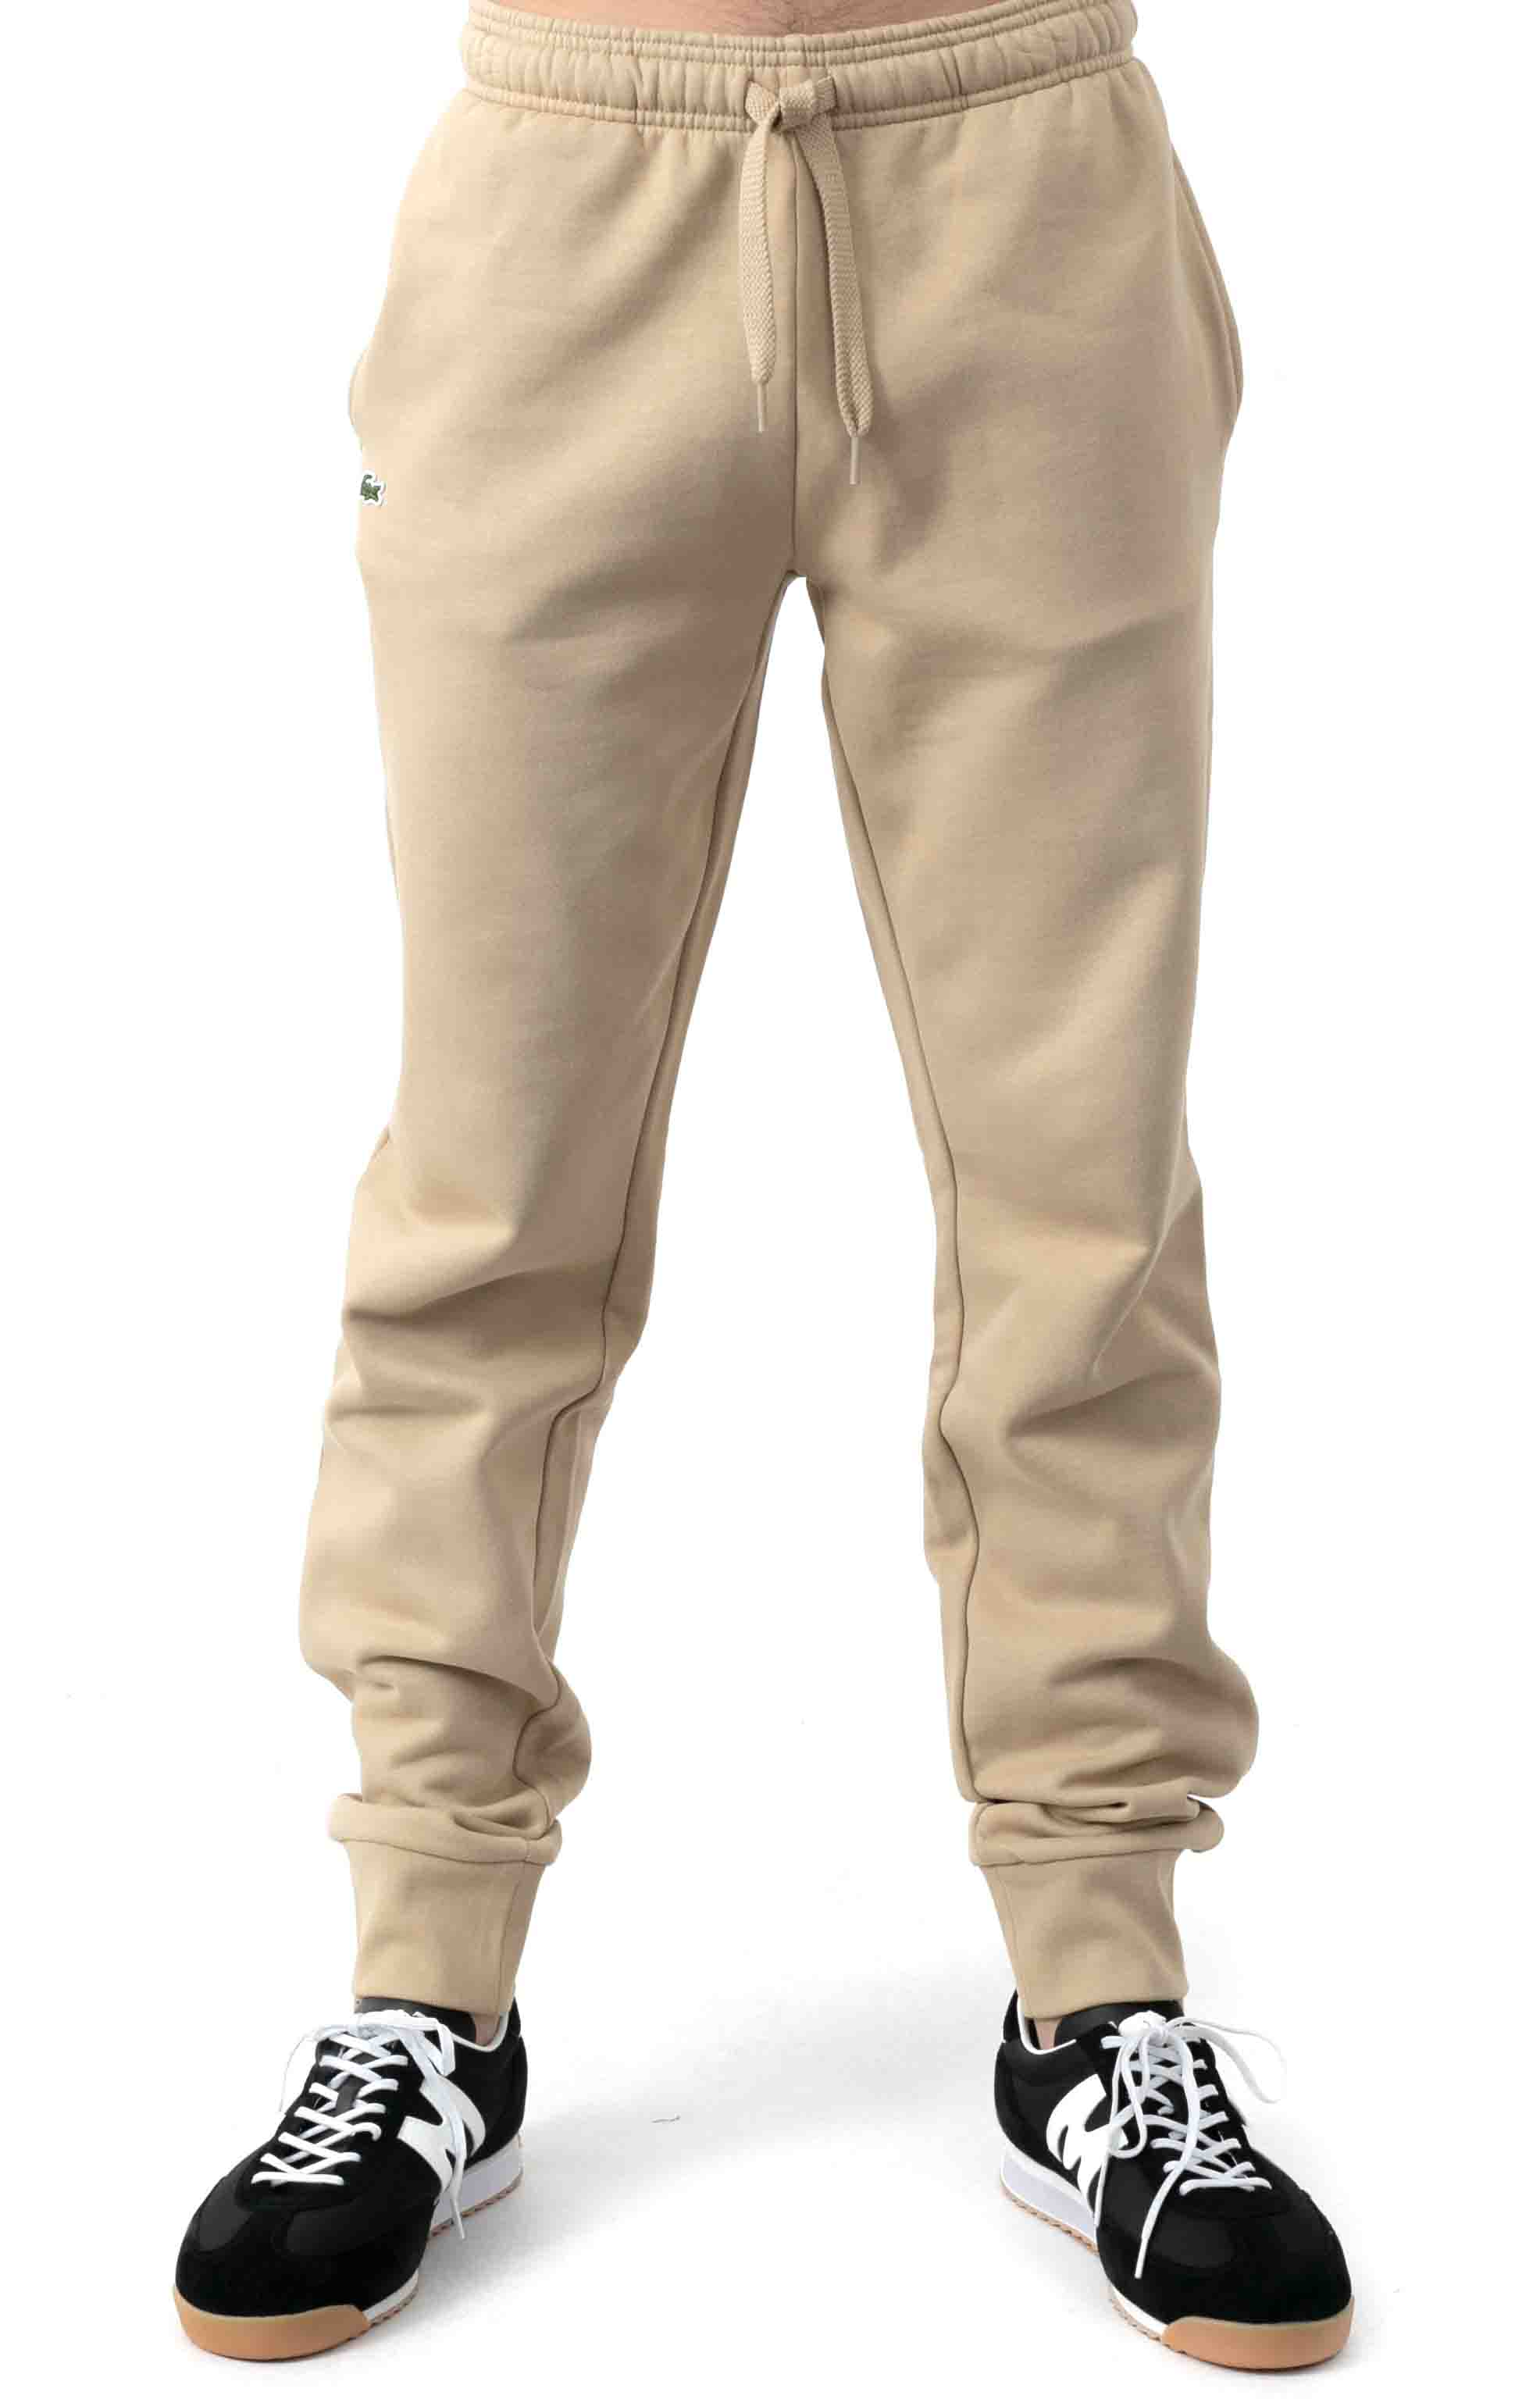 SPORT Fleece Jogging Pants - Beige  2